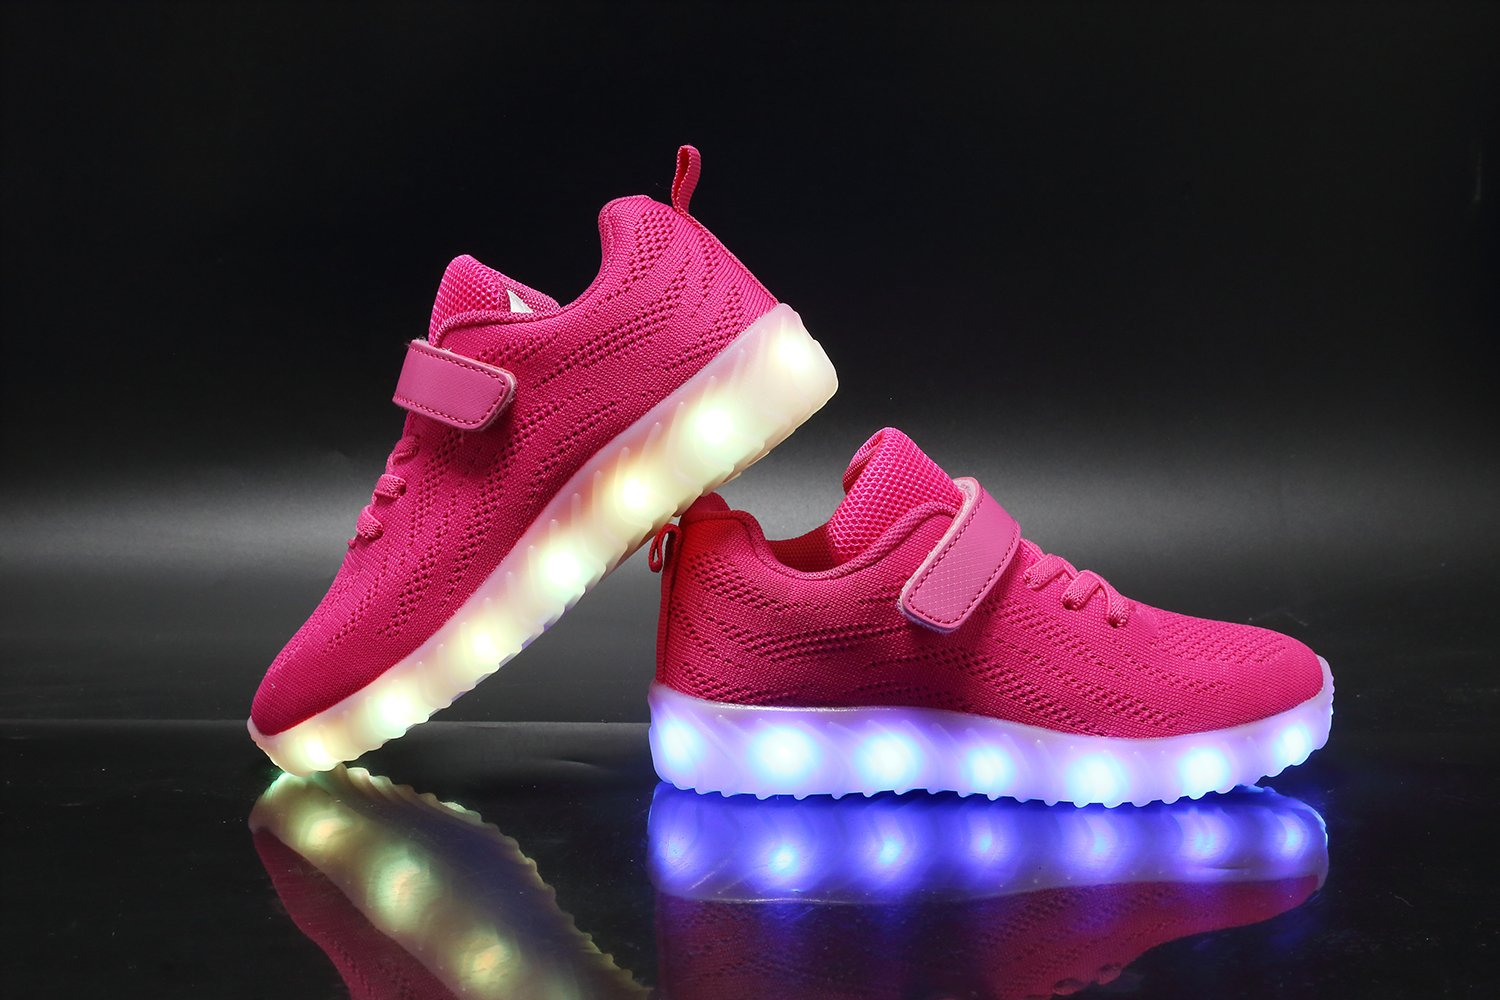 Nishiguang Breathable LED Light Up Shoes Luminous Flashing Sneakers for Boys Girls(Toddler/Little Kid/Big Kid)